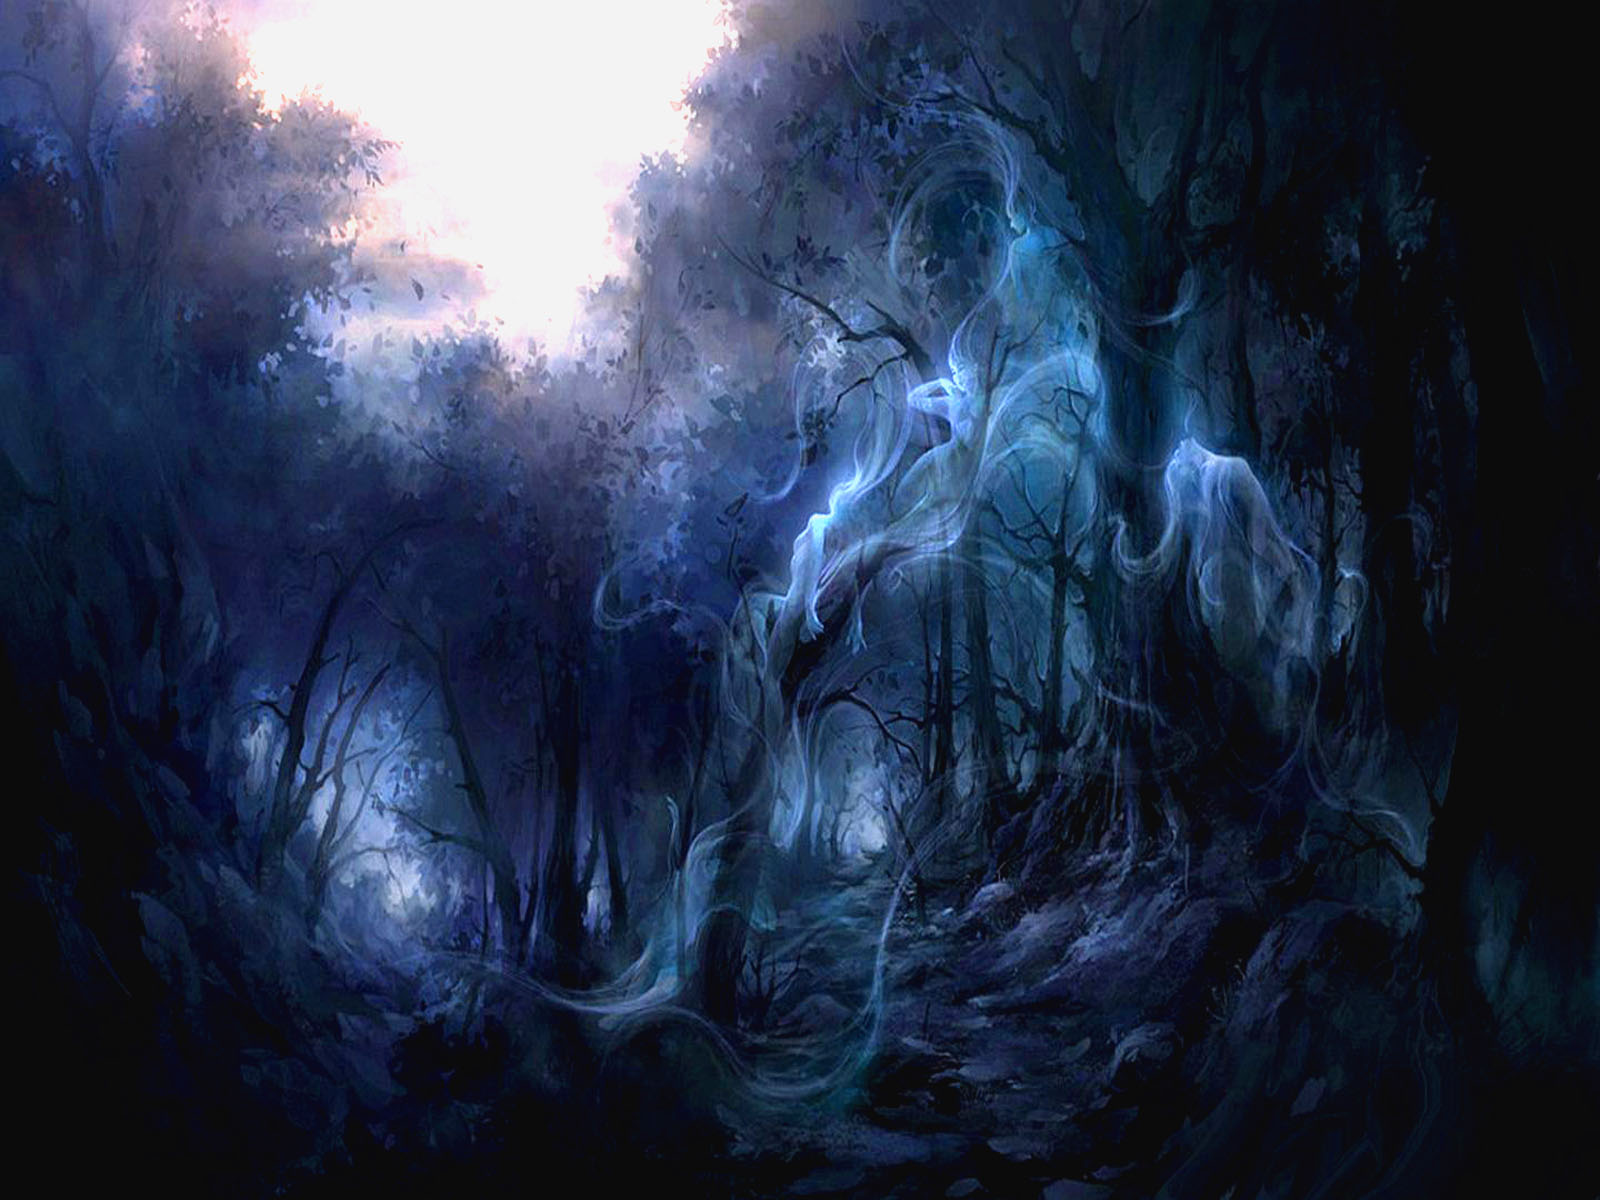 mystical scary fantasy wallpaper backgrounds 013 jpg MEMEs